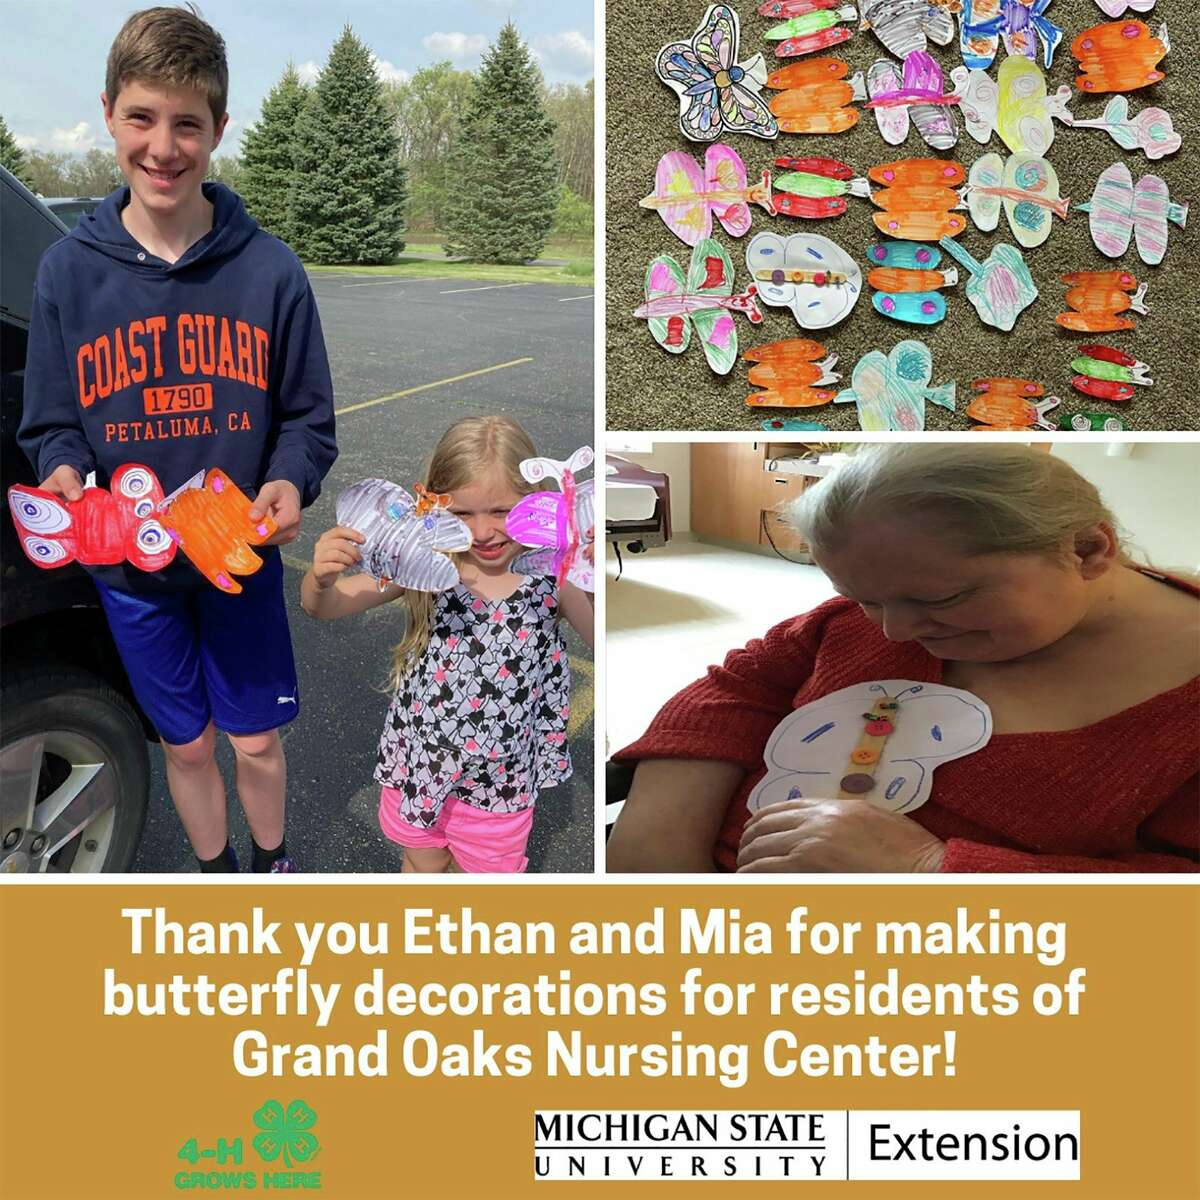 Butterflies: Siblings, Mia Snyder, 6, and Ethan Smith, 13, created paper butterflies and delivered them to residents at Grand Oaks Nursing Center in Baldwin. (Courtesy/Lake County 4H)